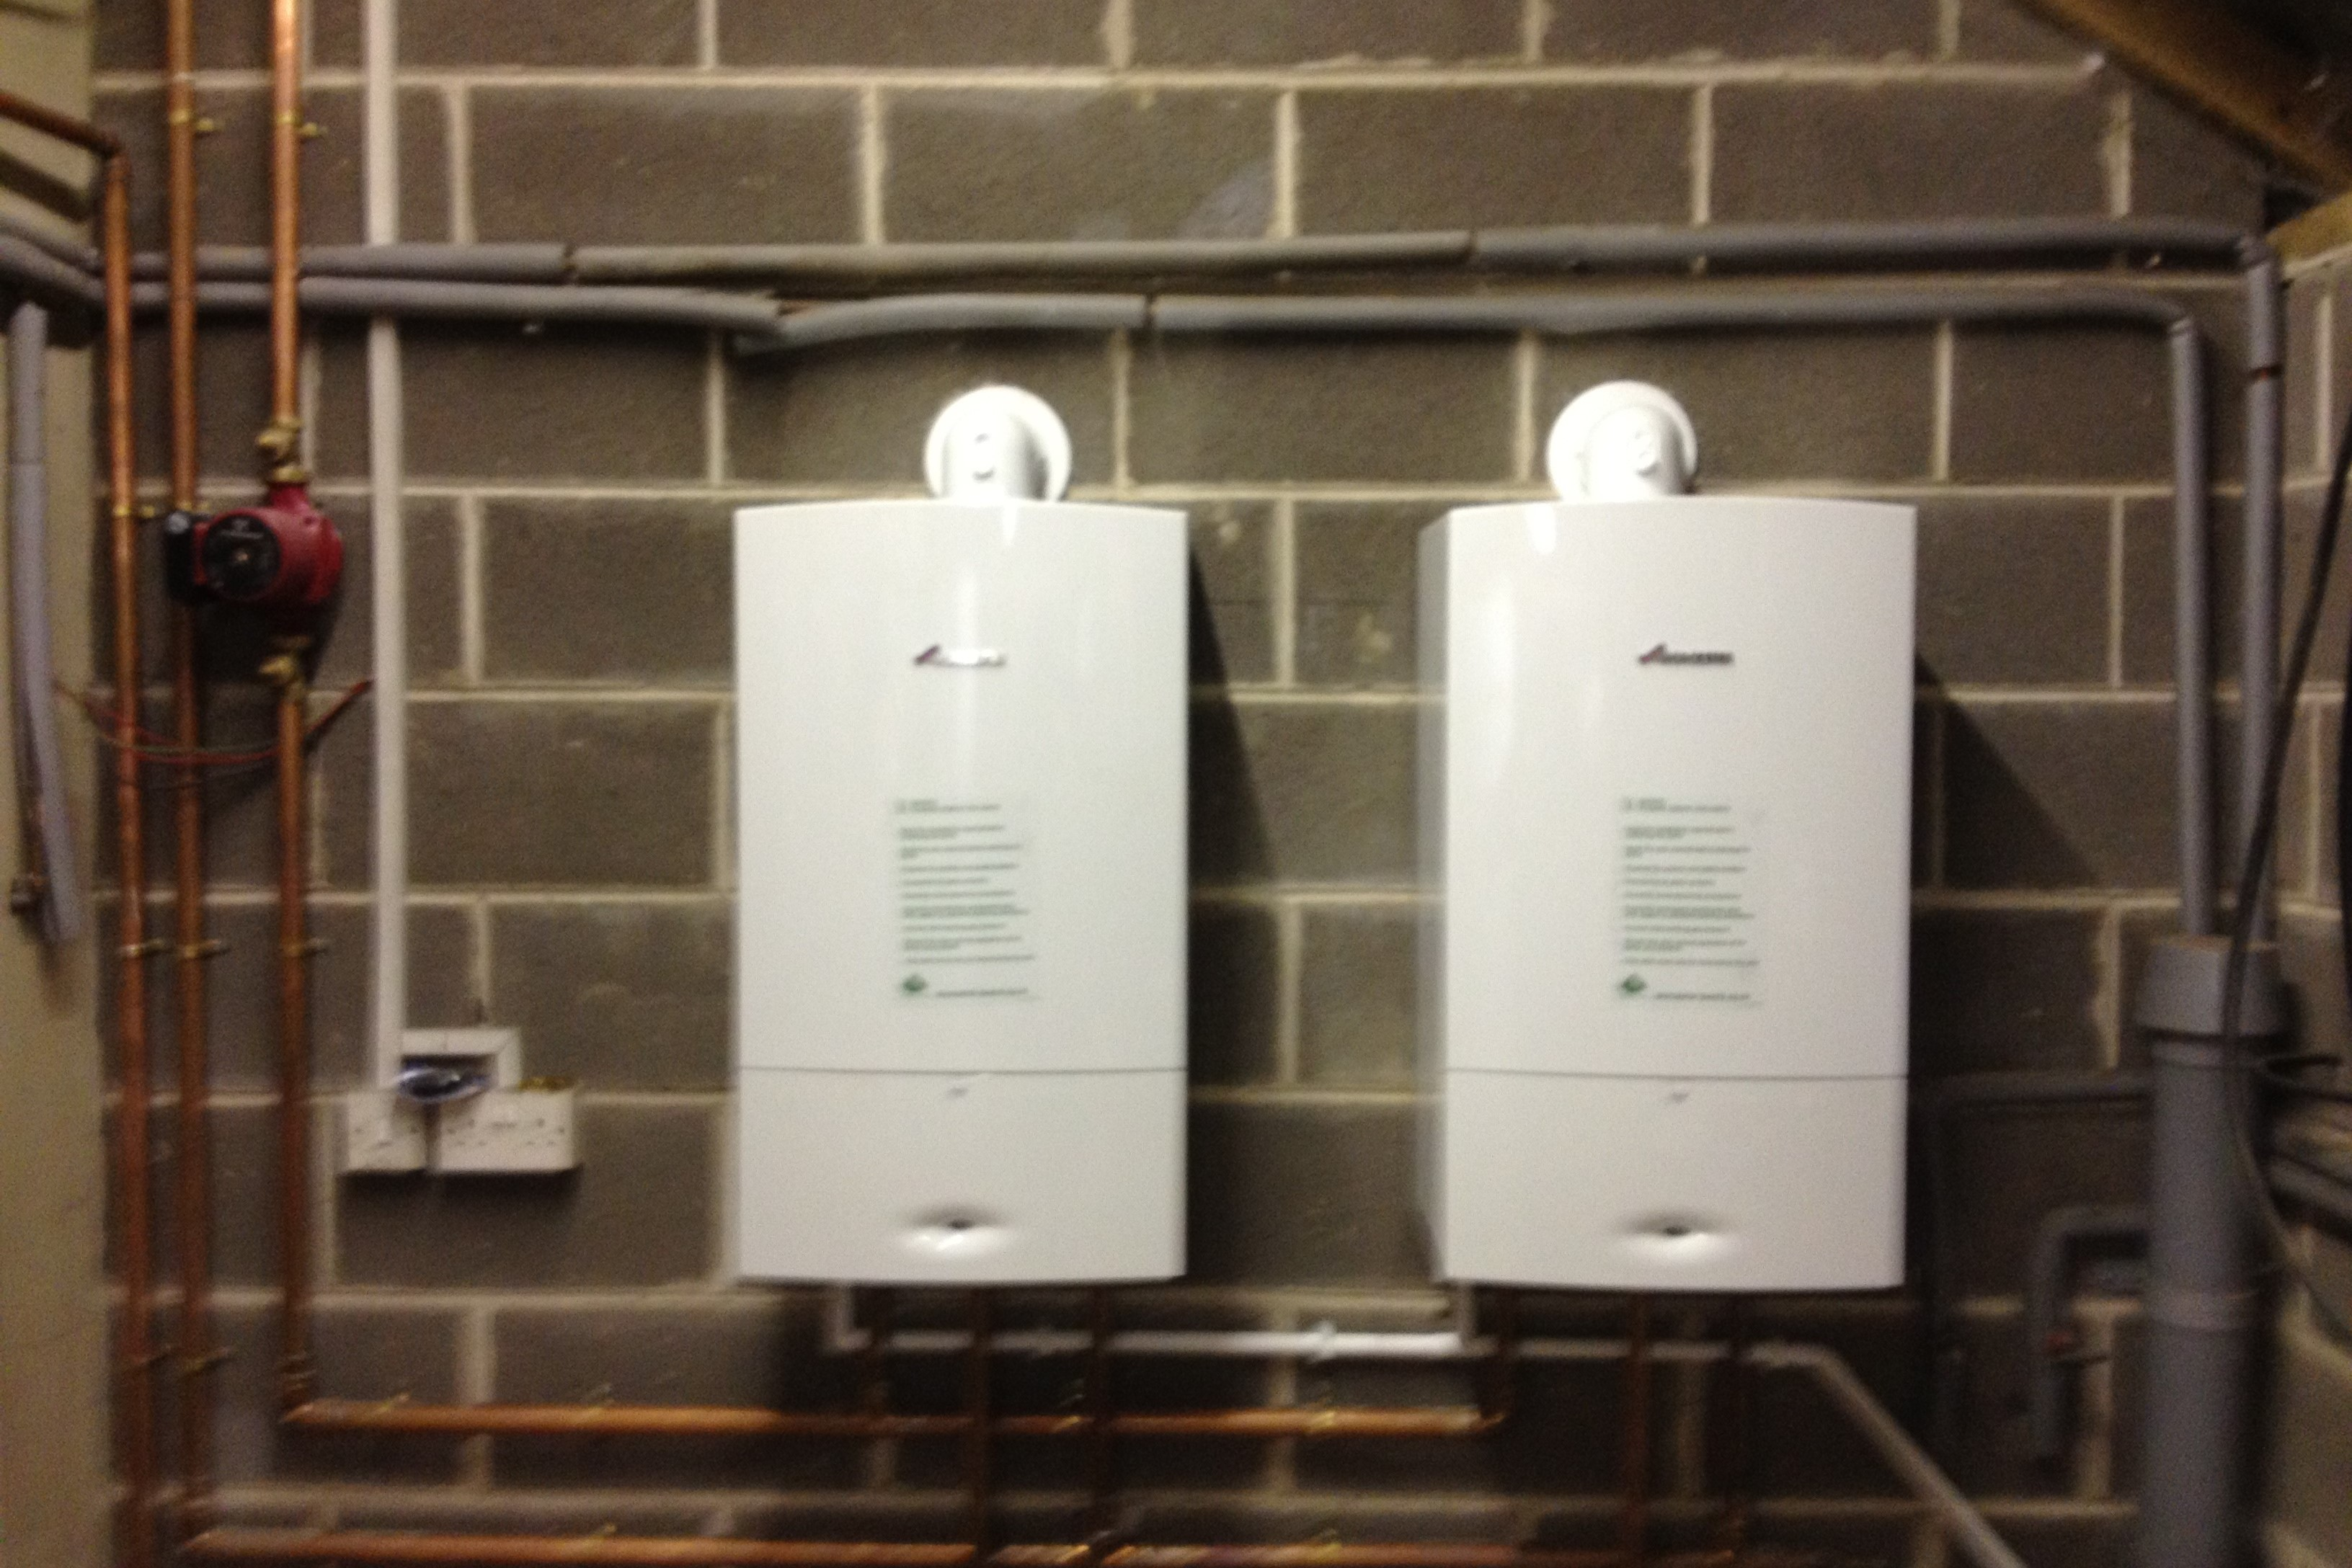 3-2 Two Worcester 40 cdi boilers piped on a header for large properties with a high central heating demand